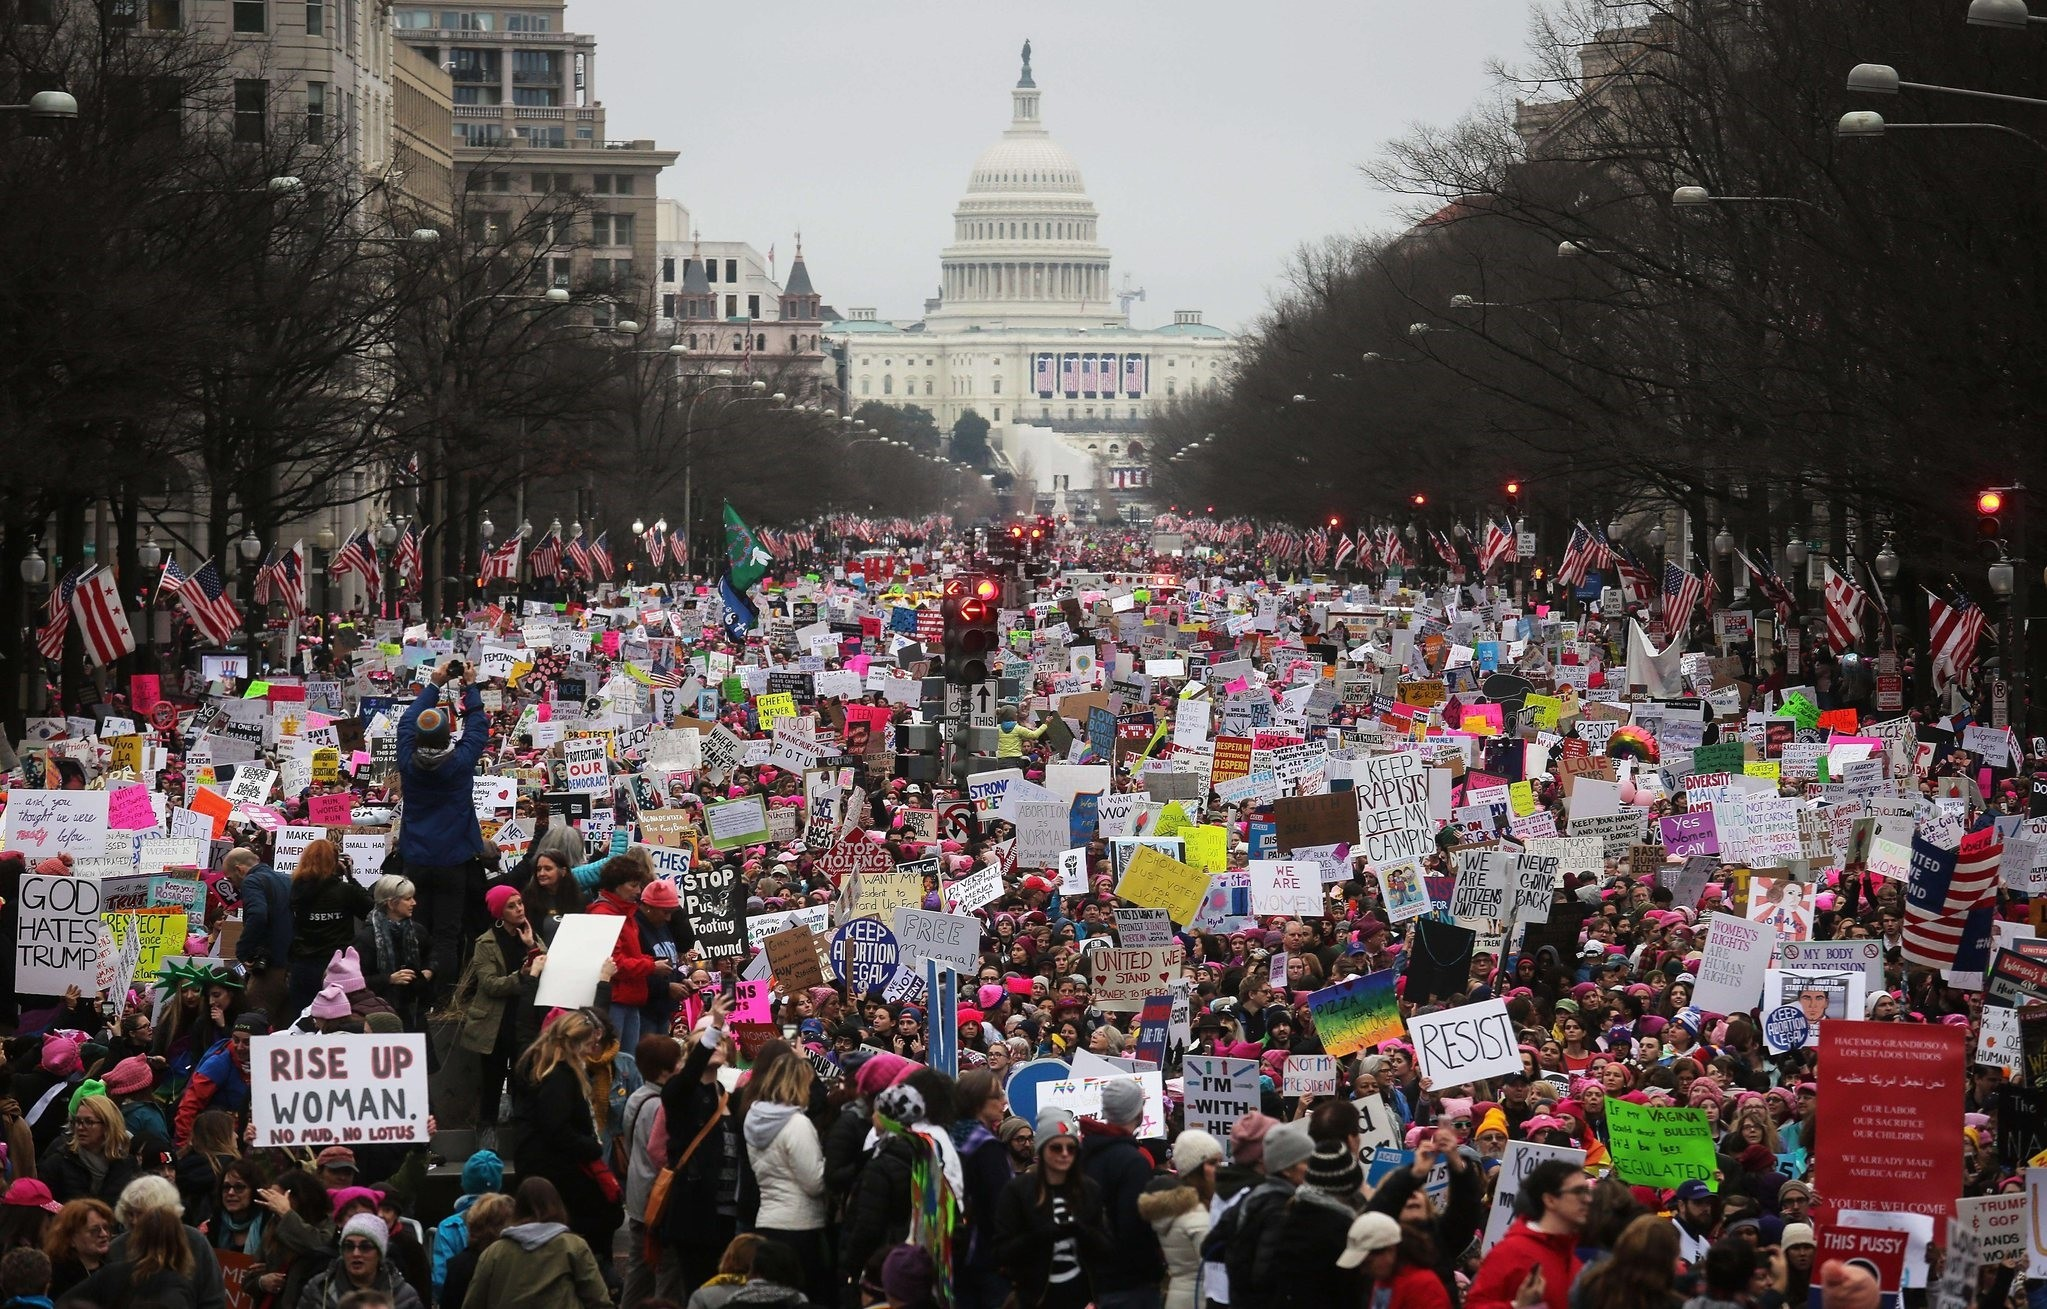 Protesters walk up Pennsylvania Avenue during the Women's March on Washington, with the U.S. Capitol in the background, on January 21, 2017 in Washington, DC. (AFP Photo)